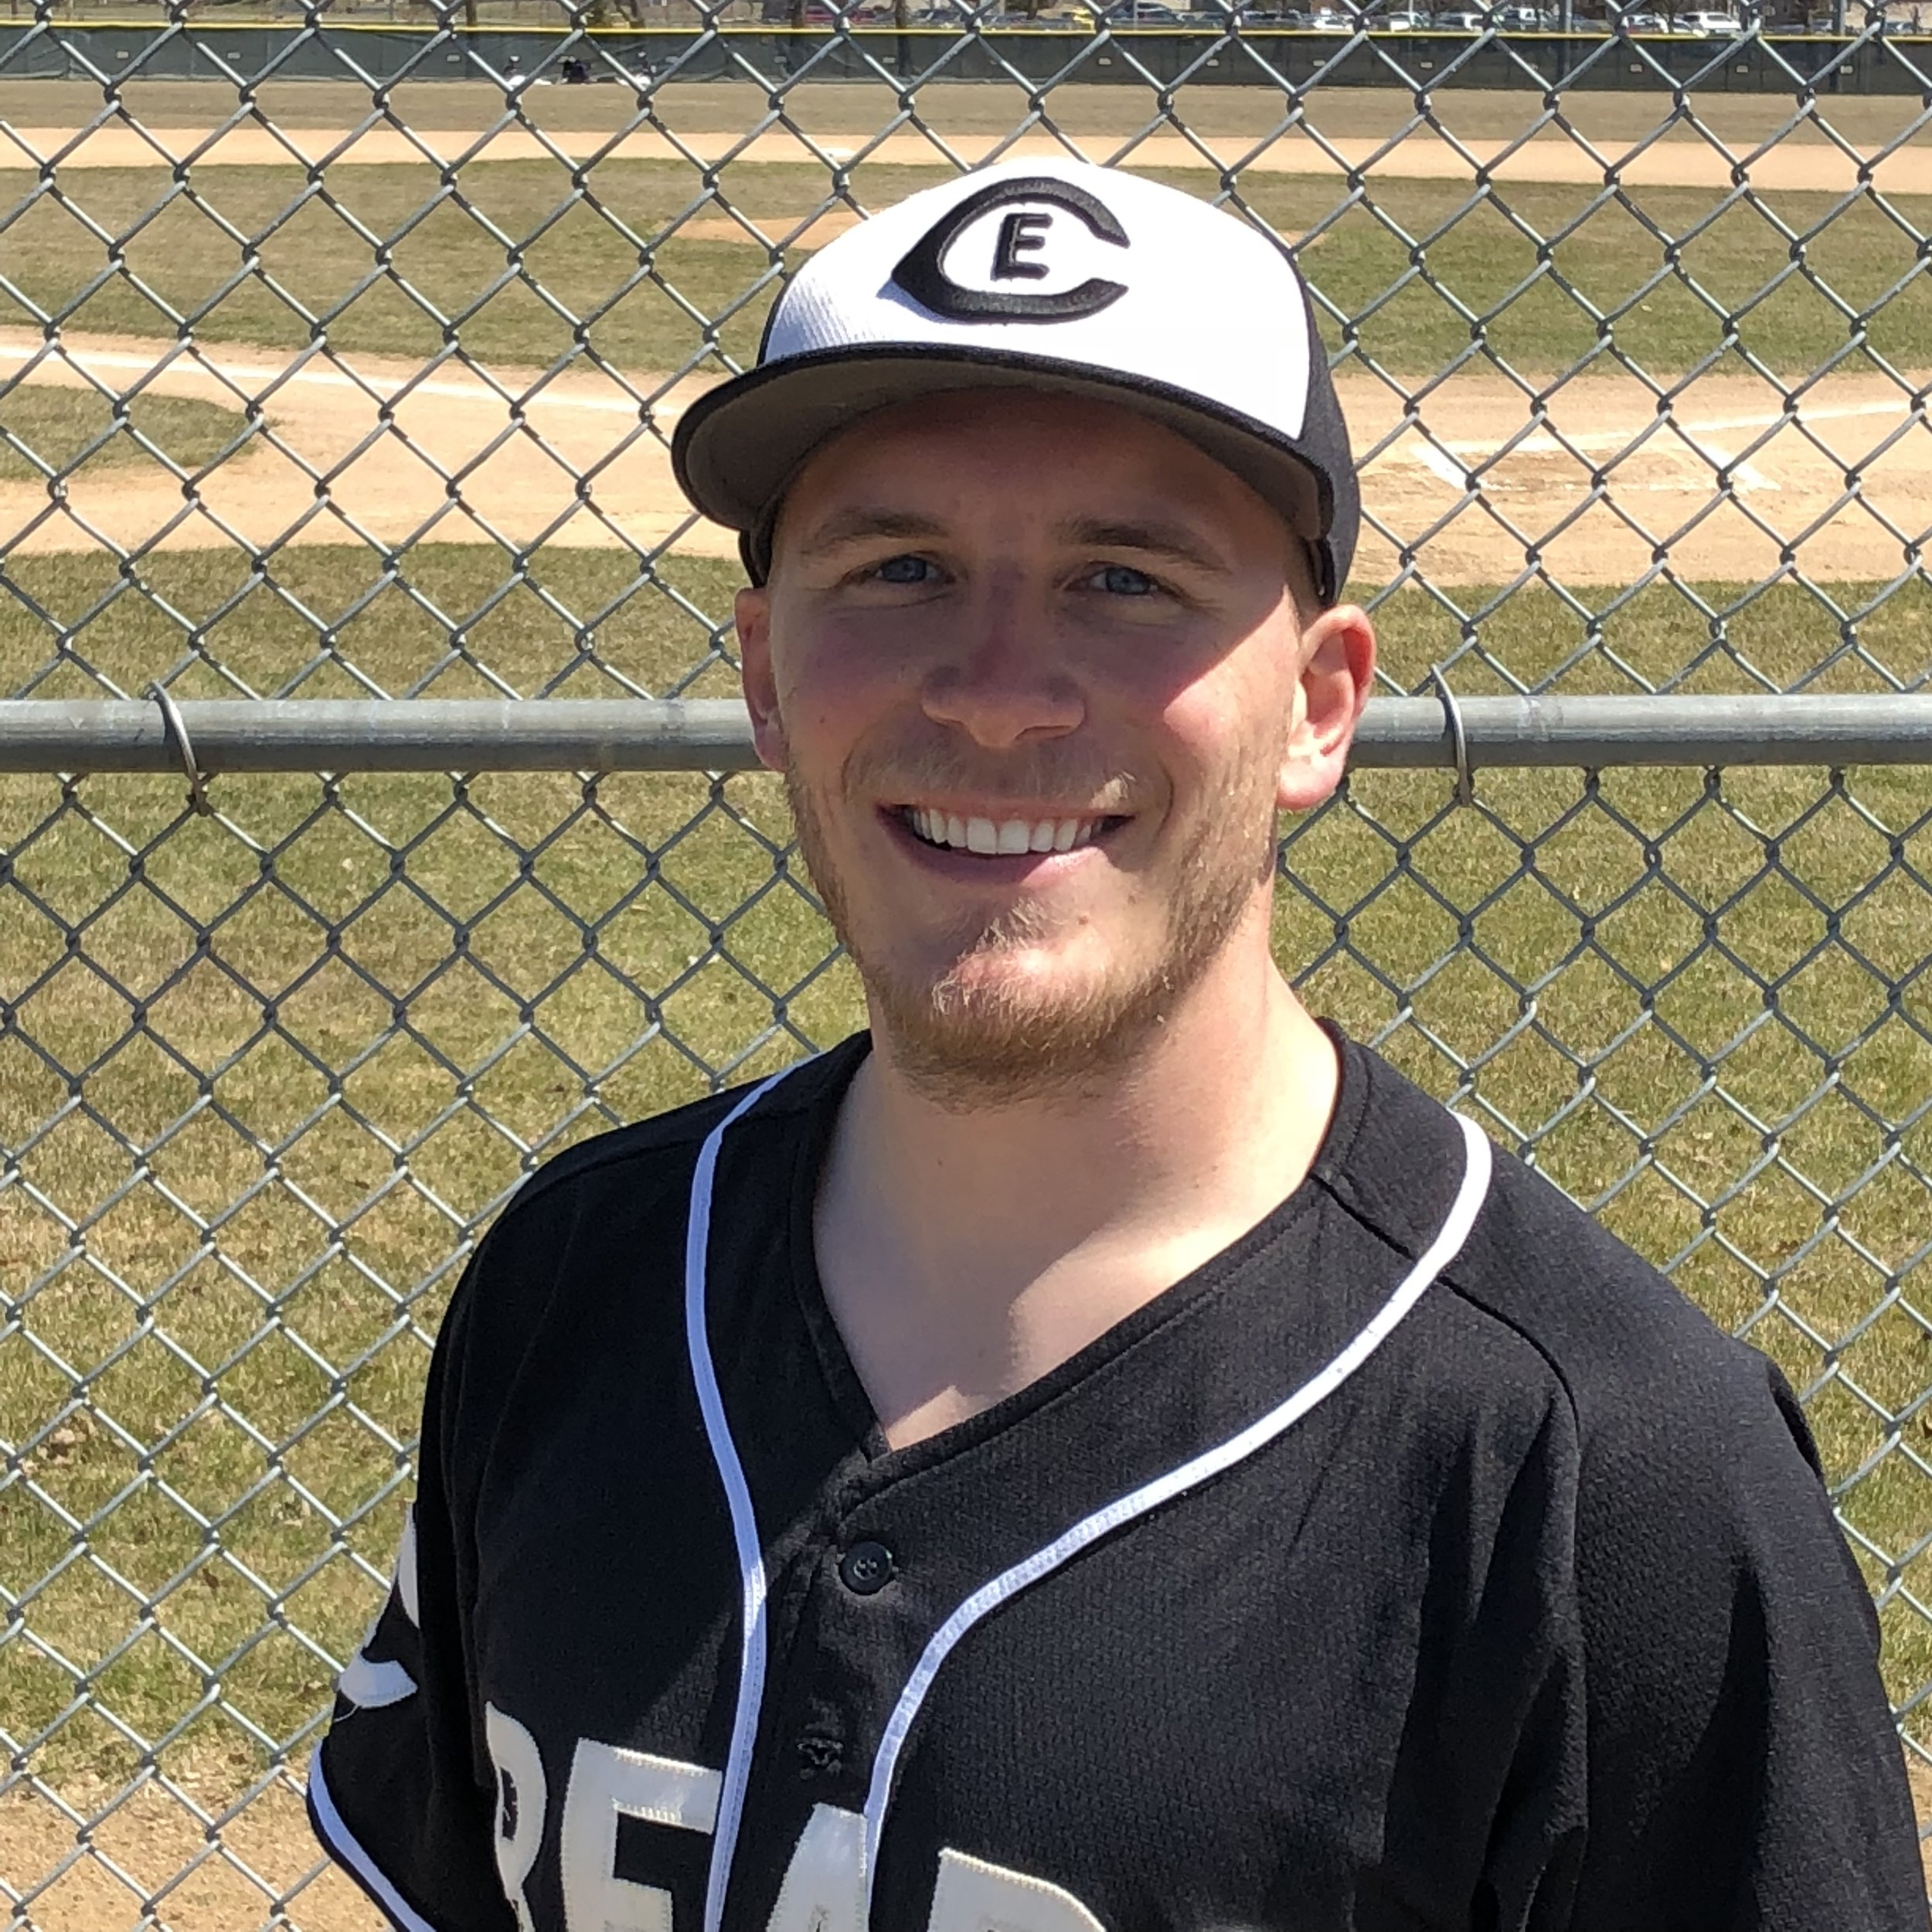 5 - Josh Halling - Bats: LeftThrows: RightPosition: OF